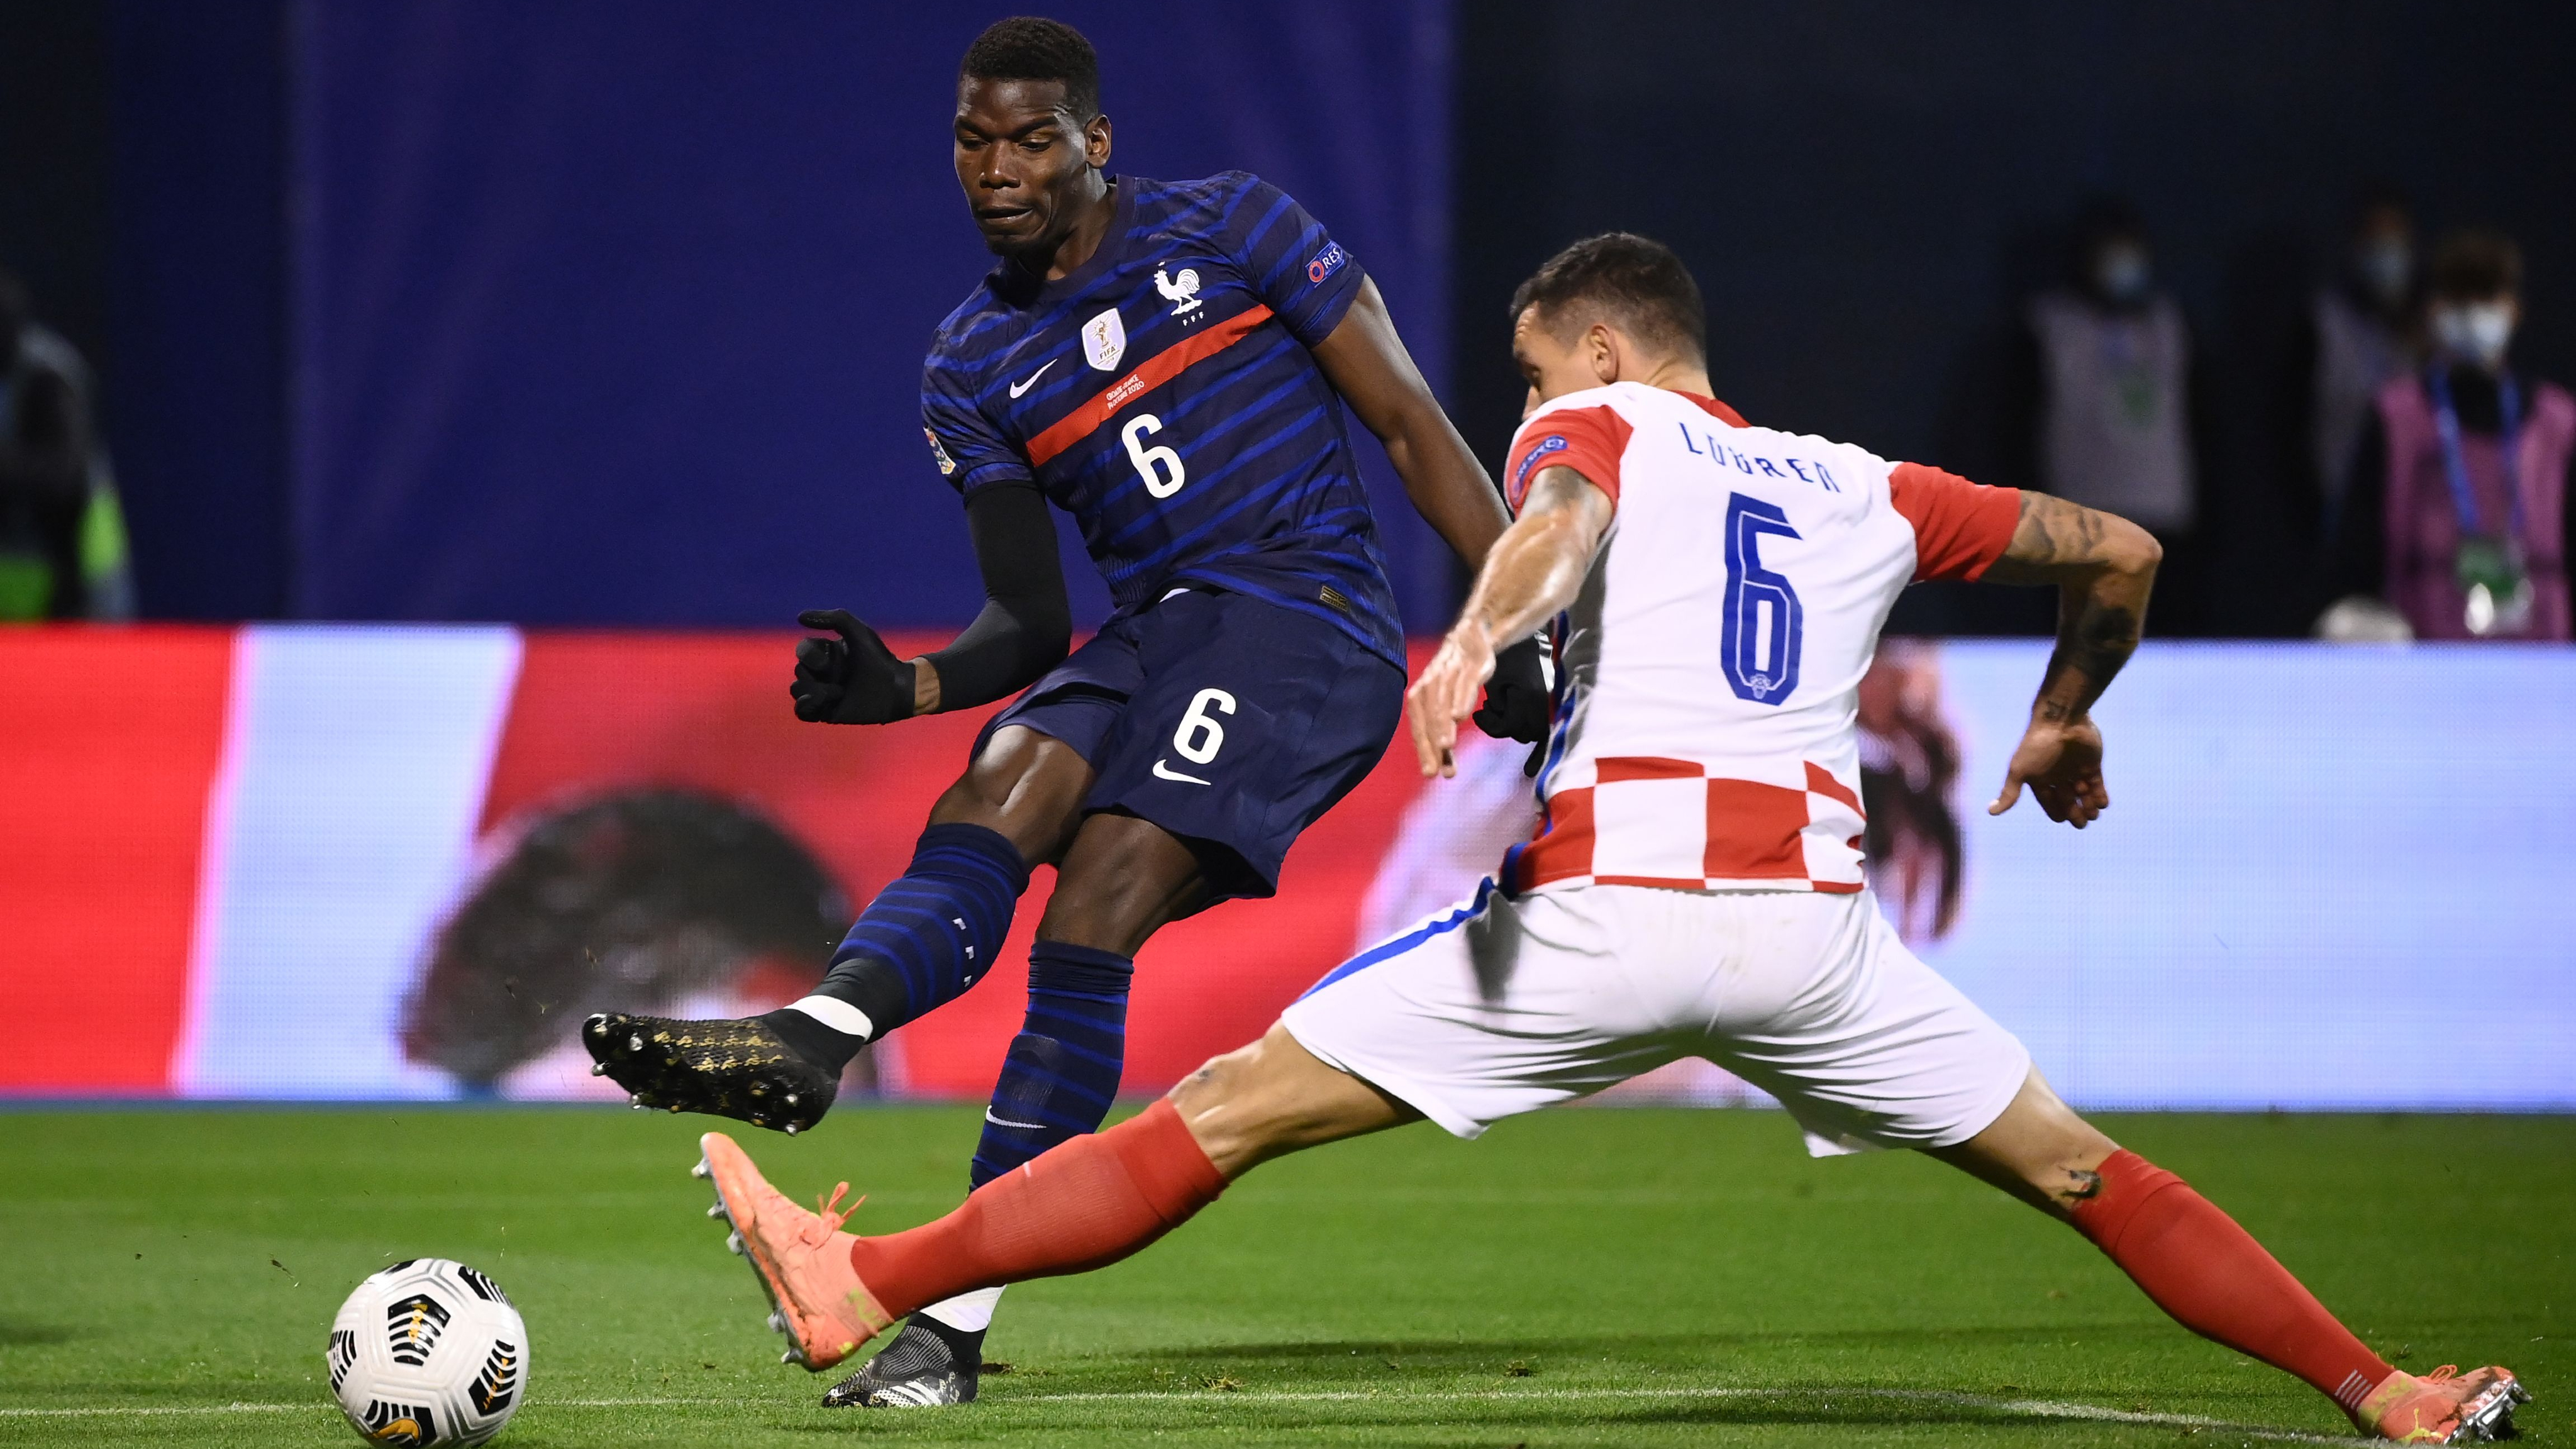 'He is one of the leaders' - Deschamps praises Pogba after France win in Croatia